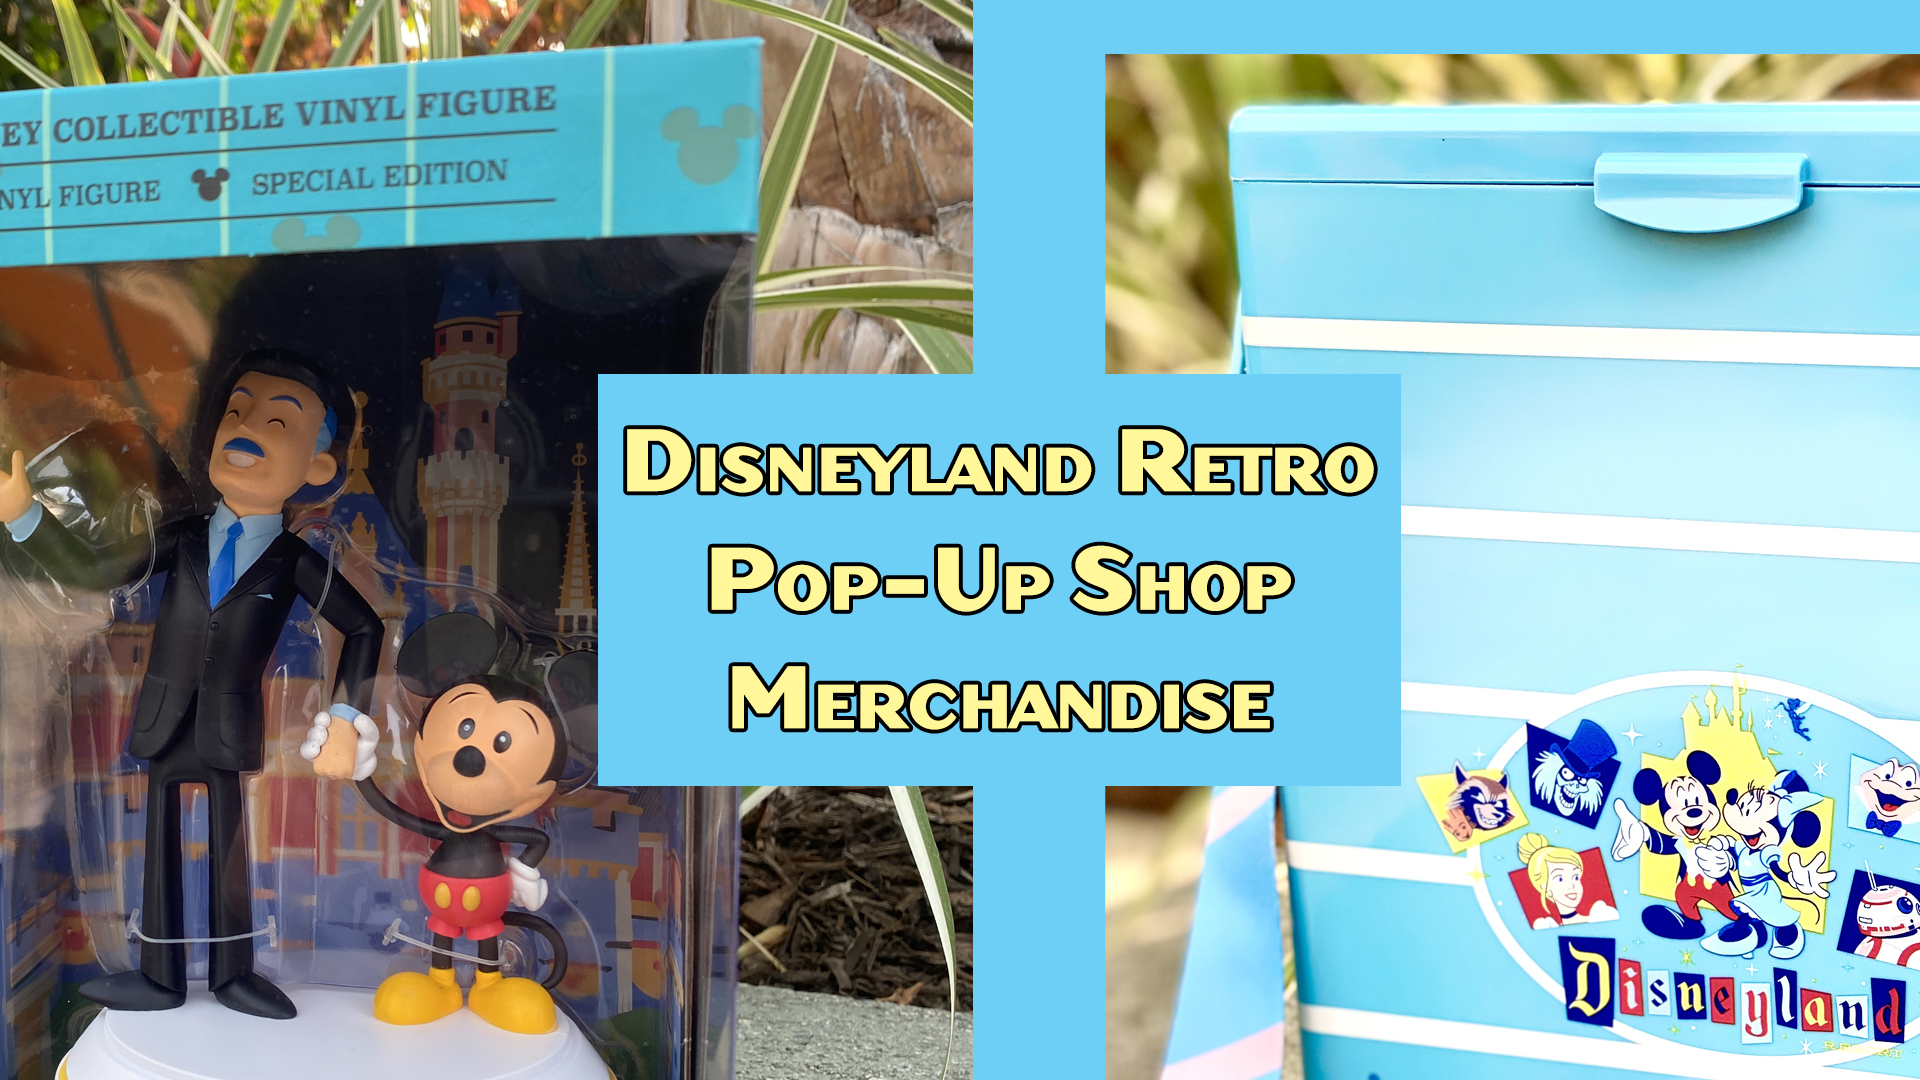 More Disneyland 65th Anniversary in the Pop Up Shop Shows Off Retro Items